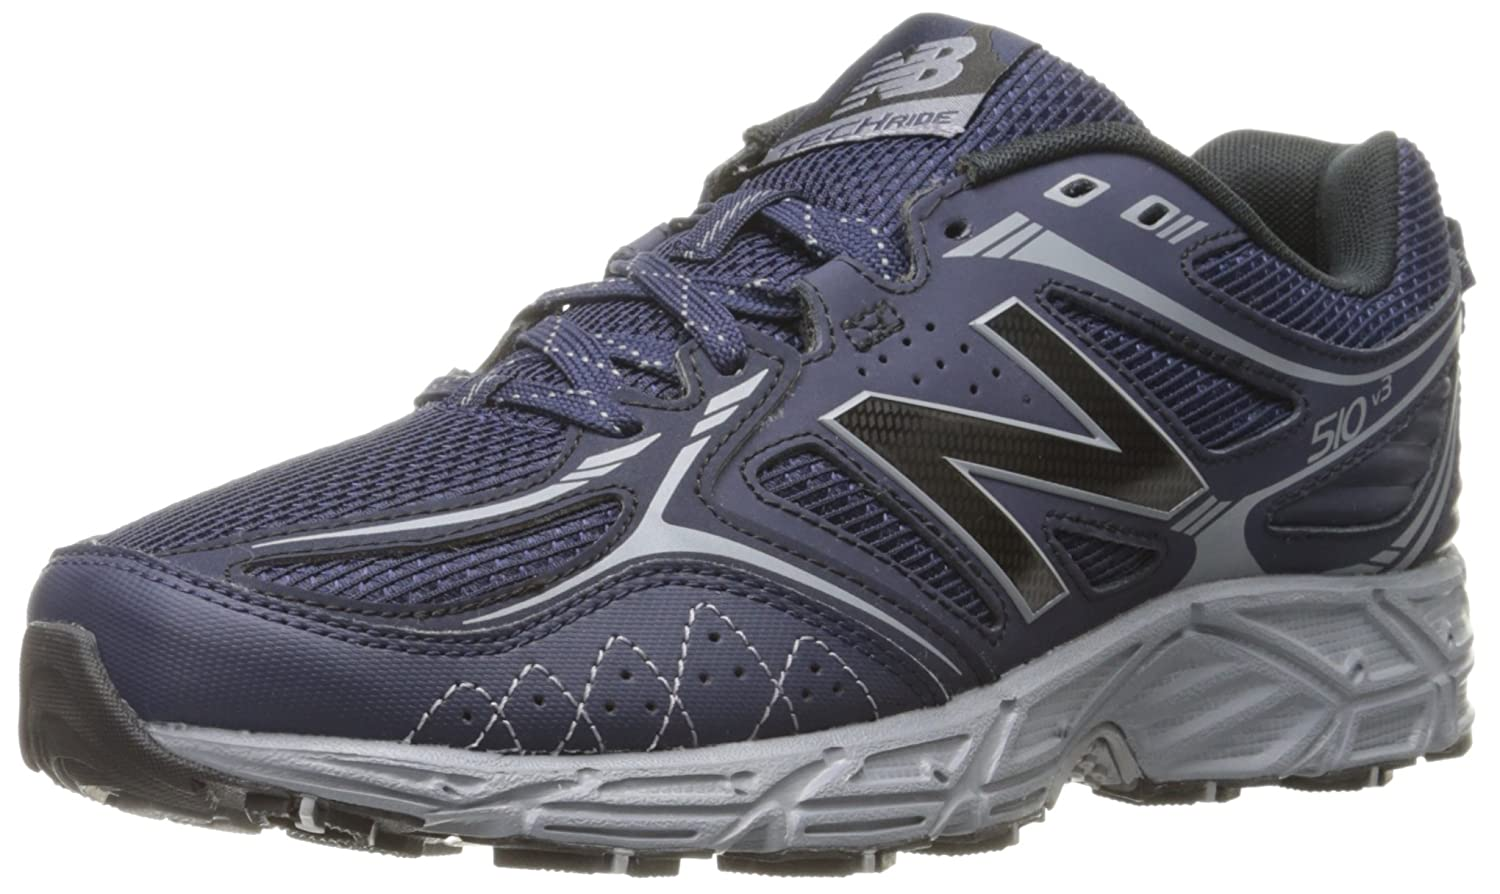 New Balance Men's 510v3 Trail Running Shoe B0164A2DCM 8.5 D(M) US|Navy/Silver